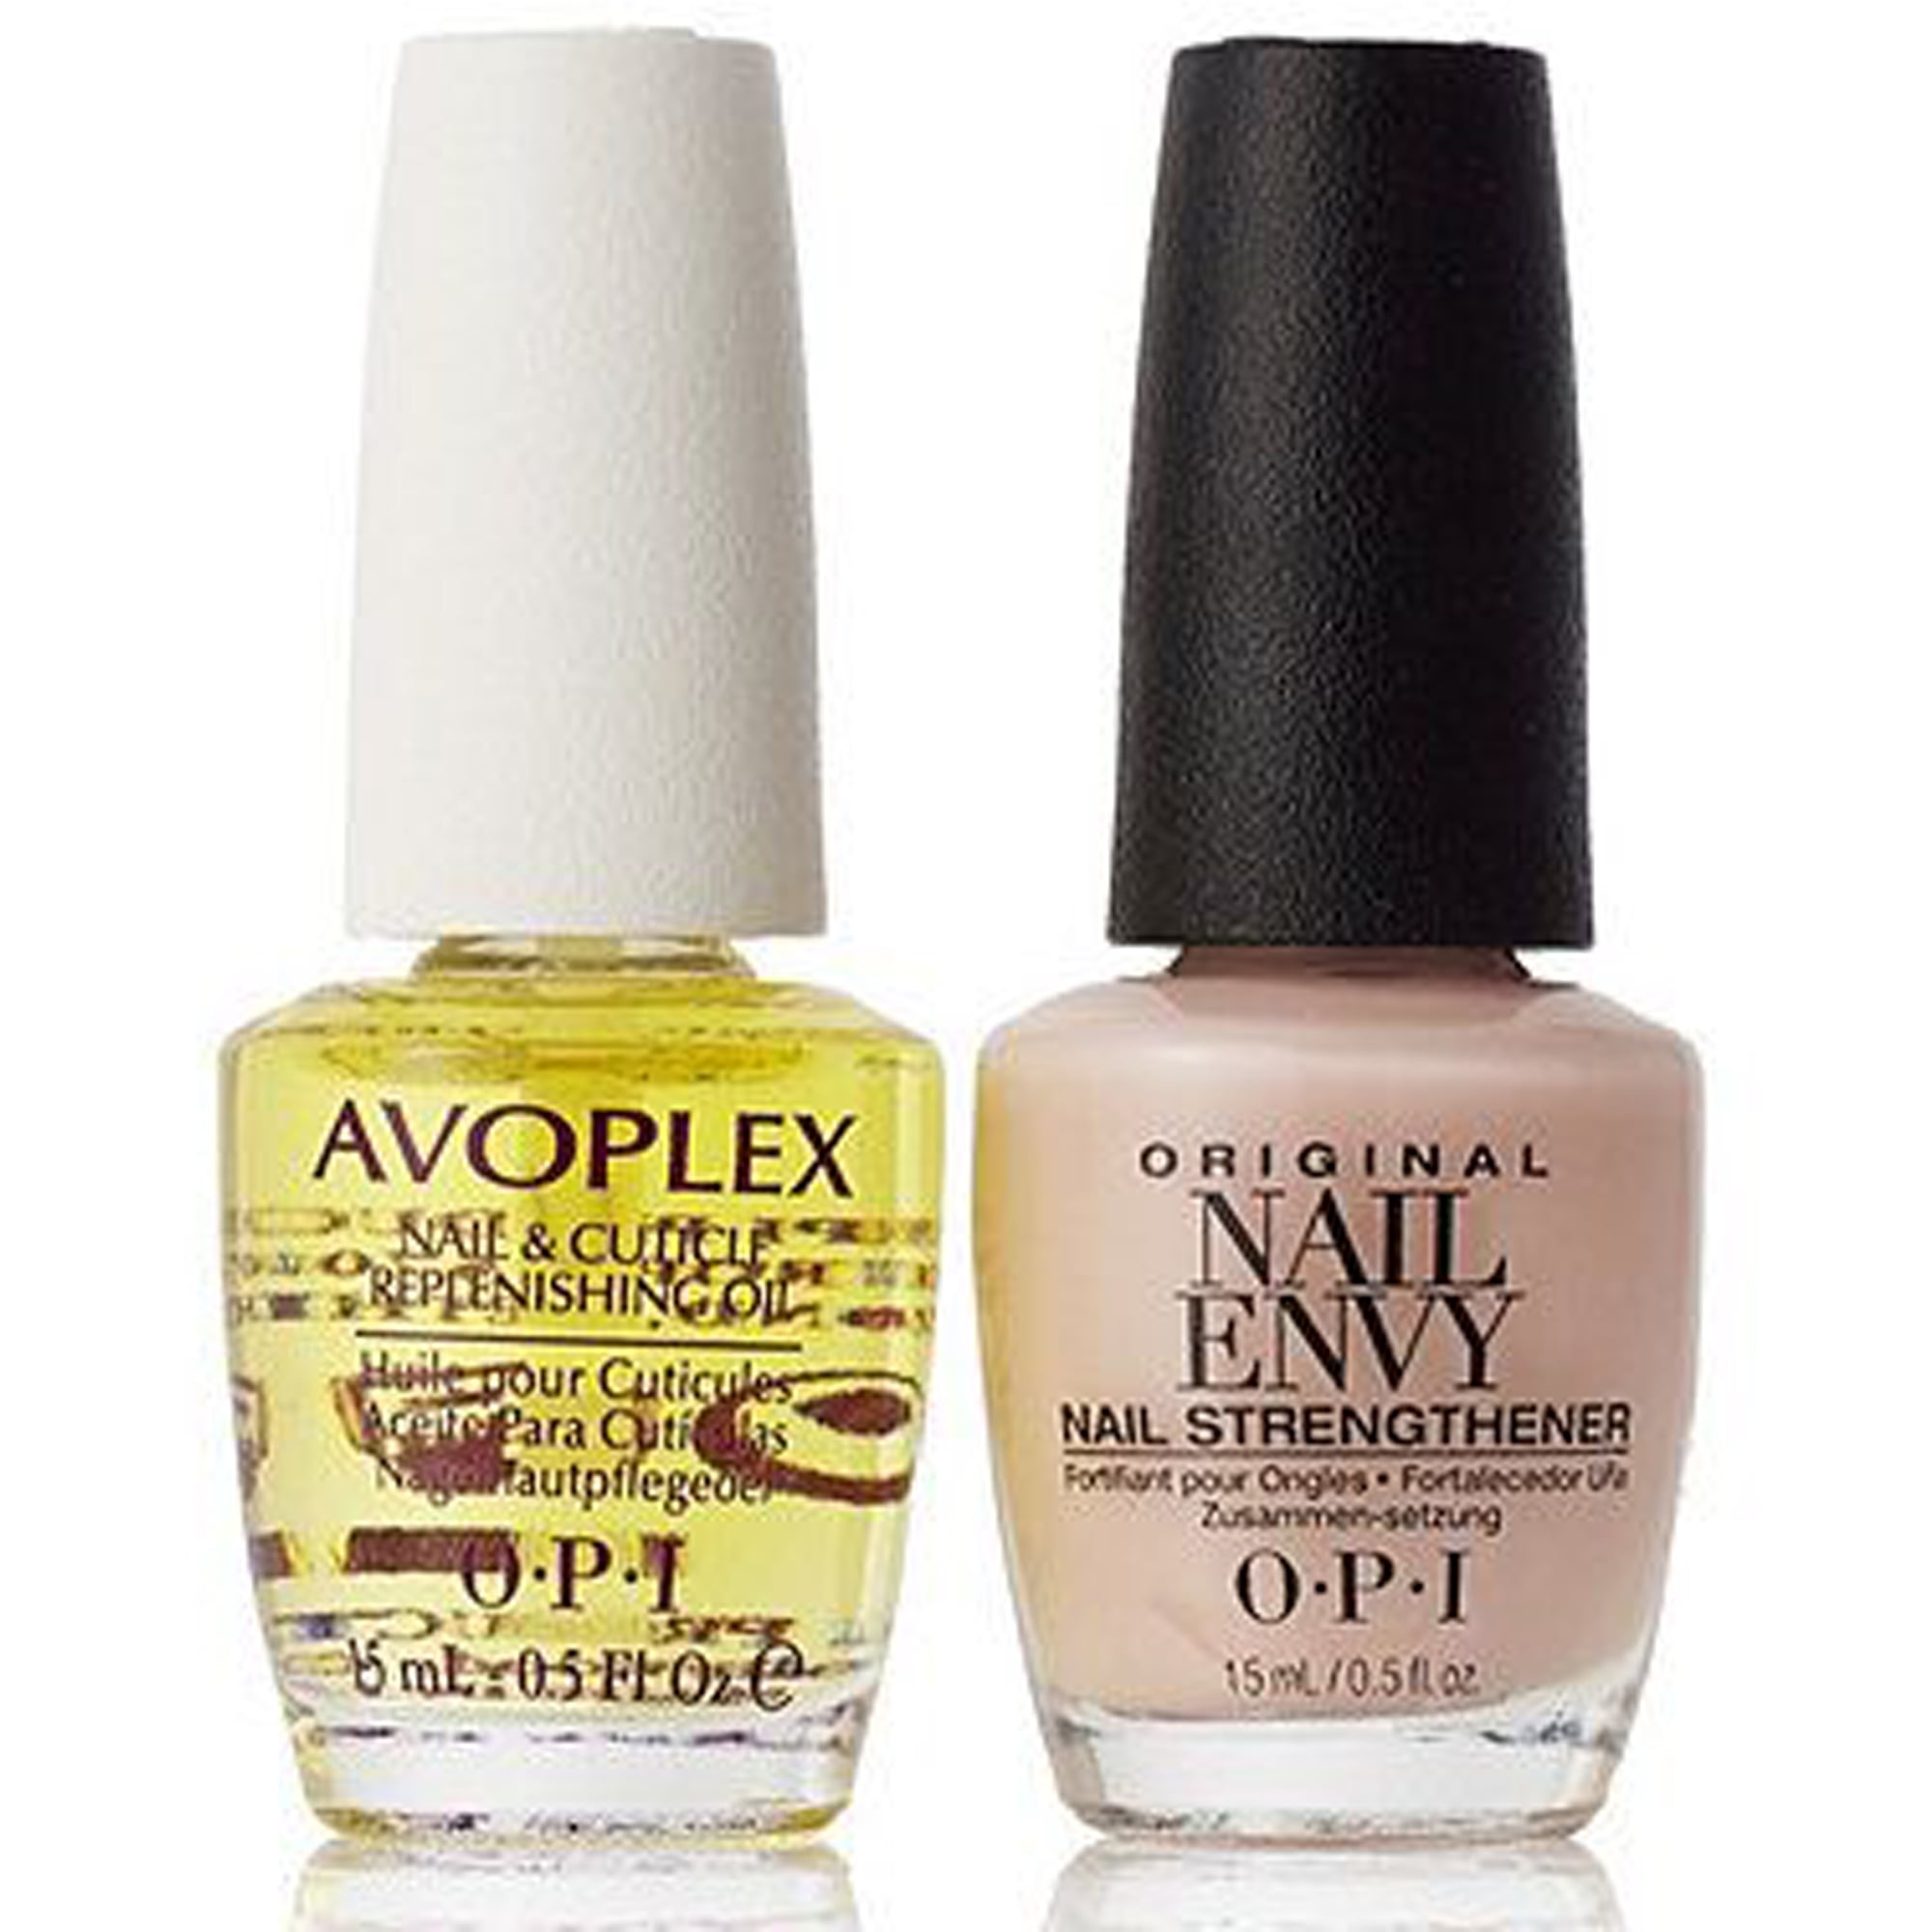 Nail Envy Strengthener Bubble Bath & Avoplex Cuticle Oil - Dream Duo